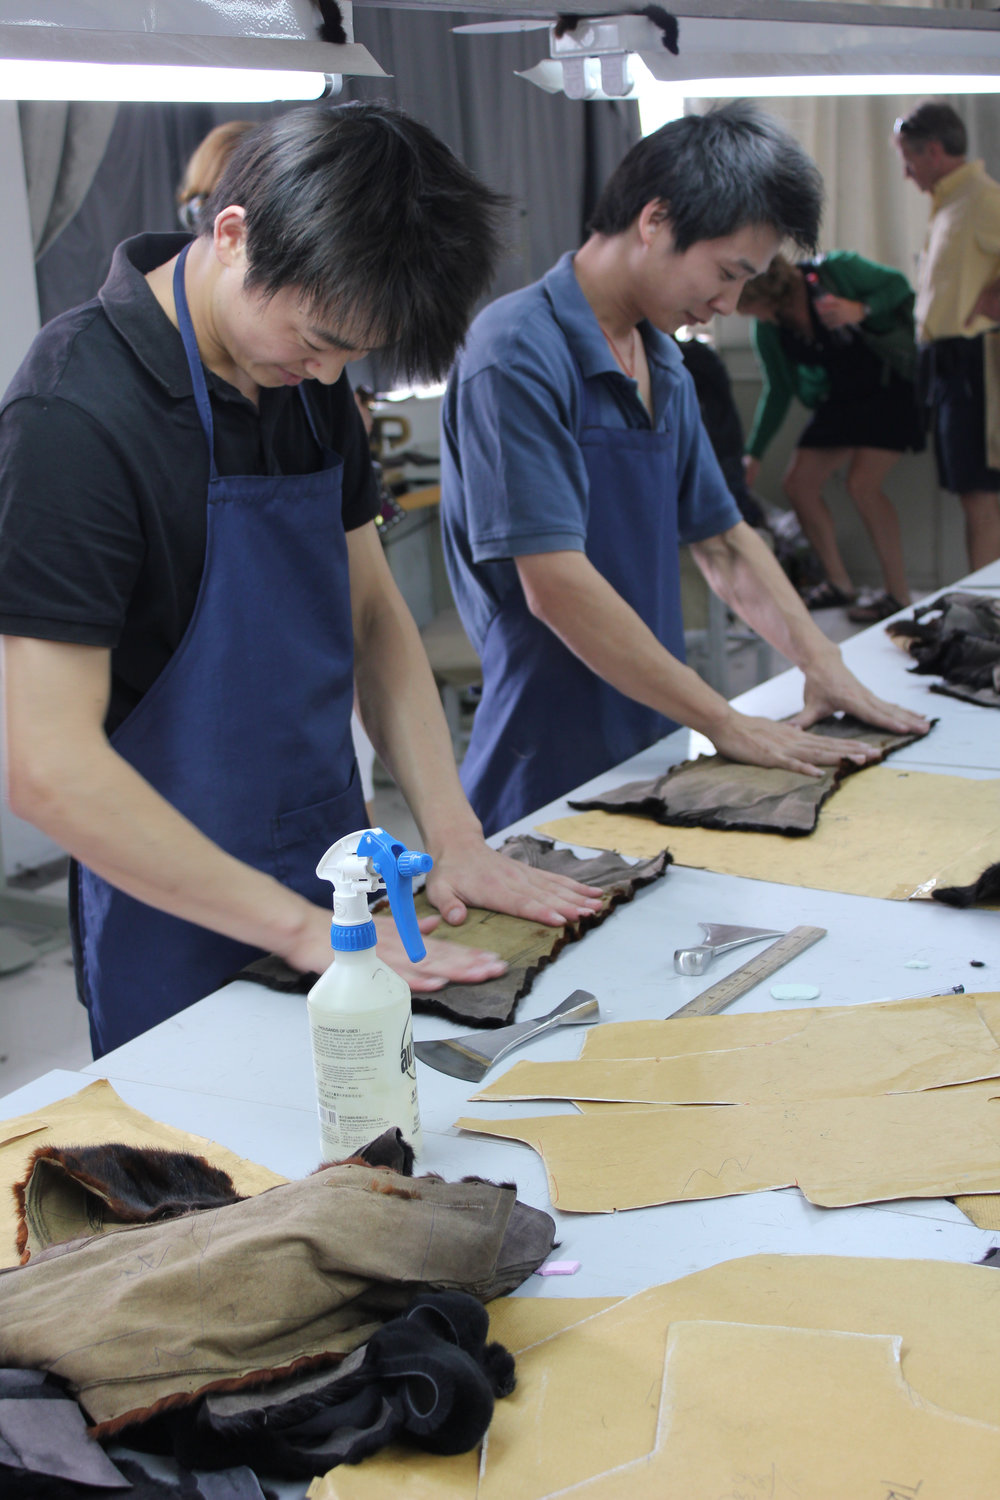 Up in the main manufacturing warehouse, workers match cut pieces of pelts to larger garment patterns.